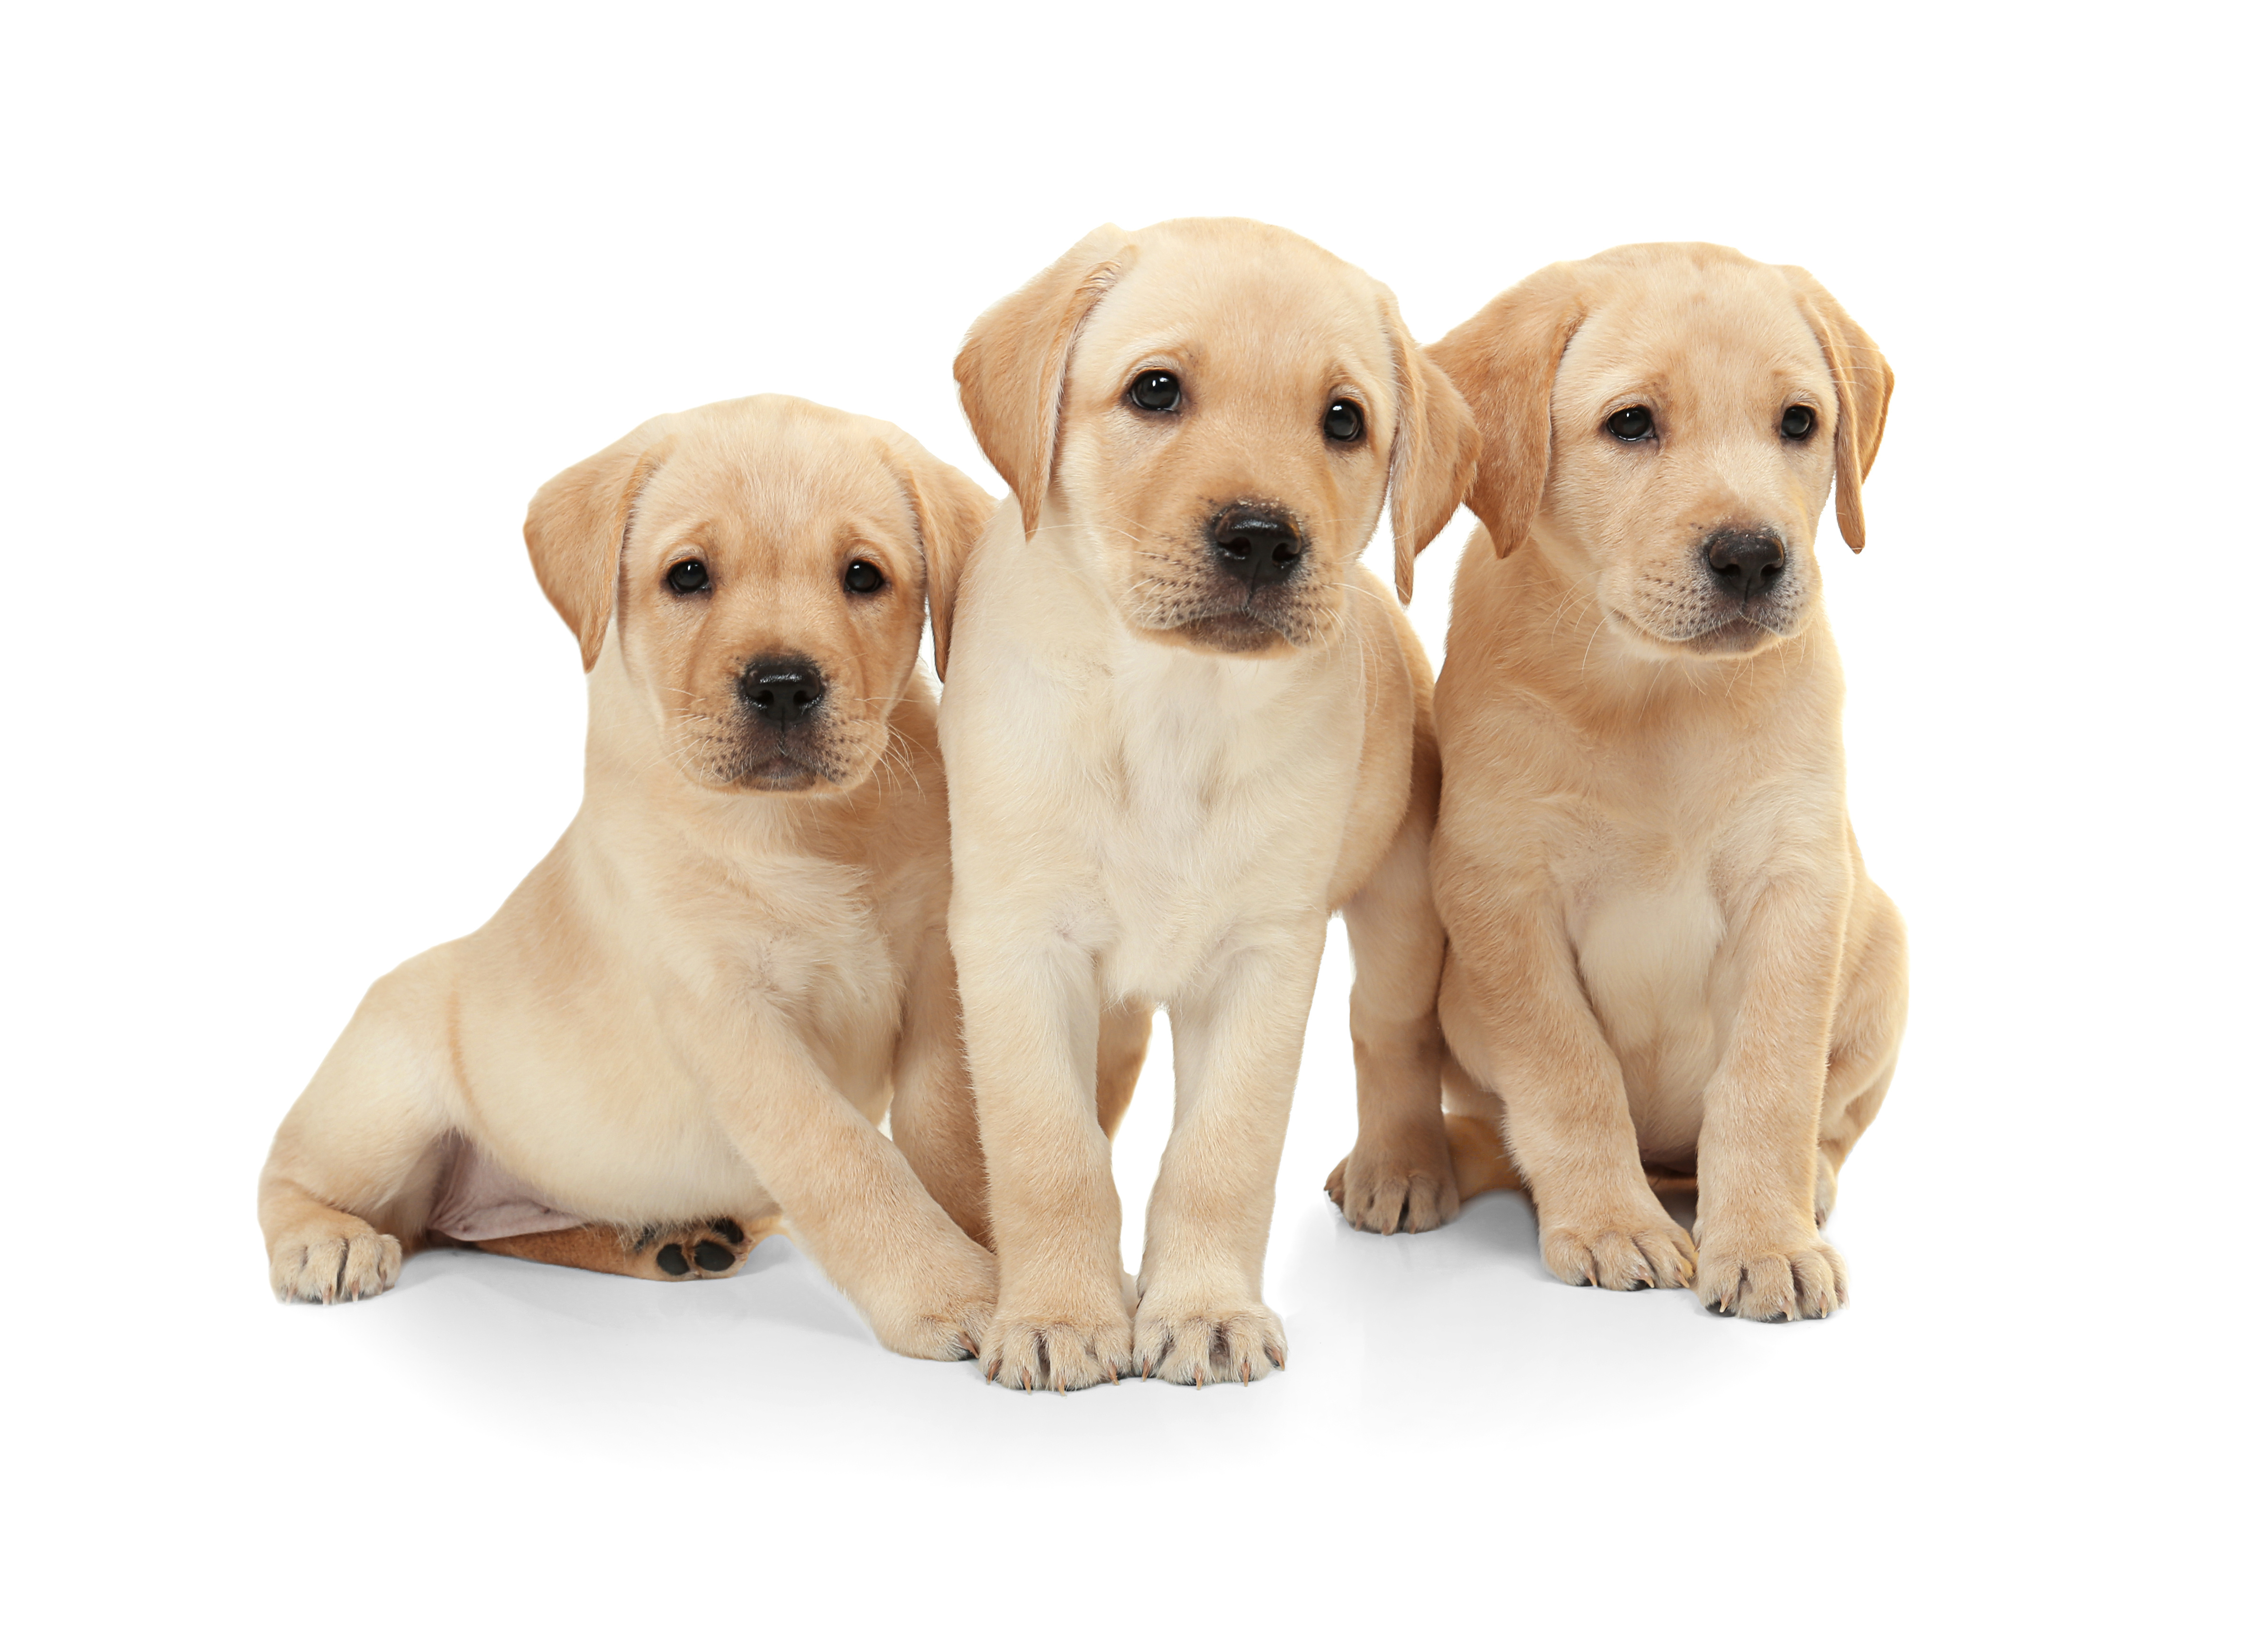 Cute labrador retriever puppies on white background